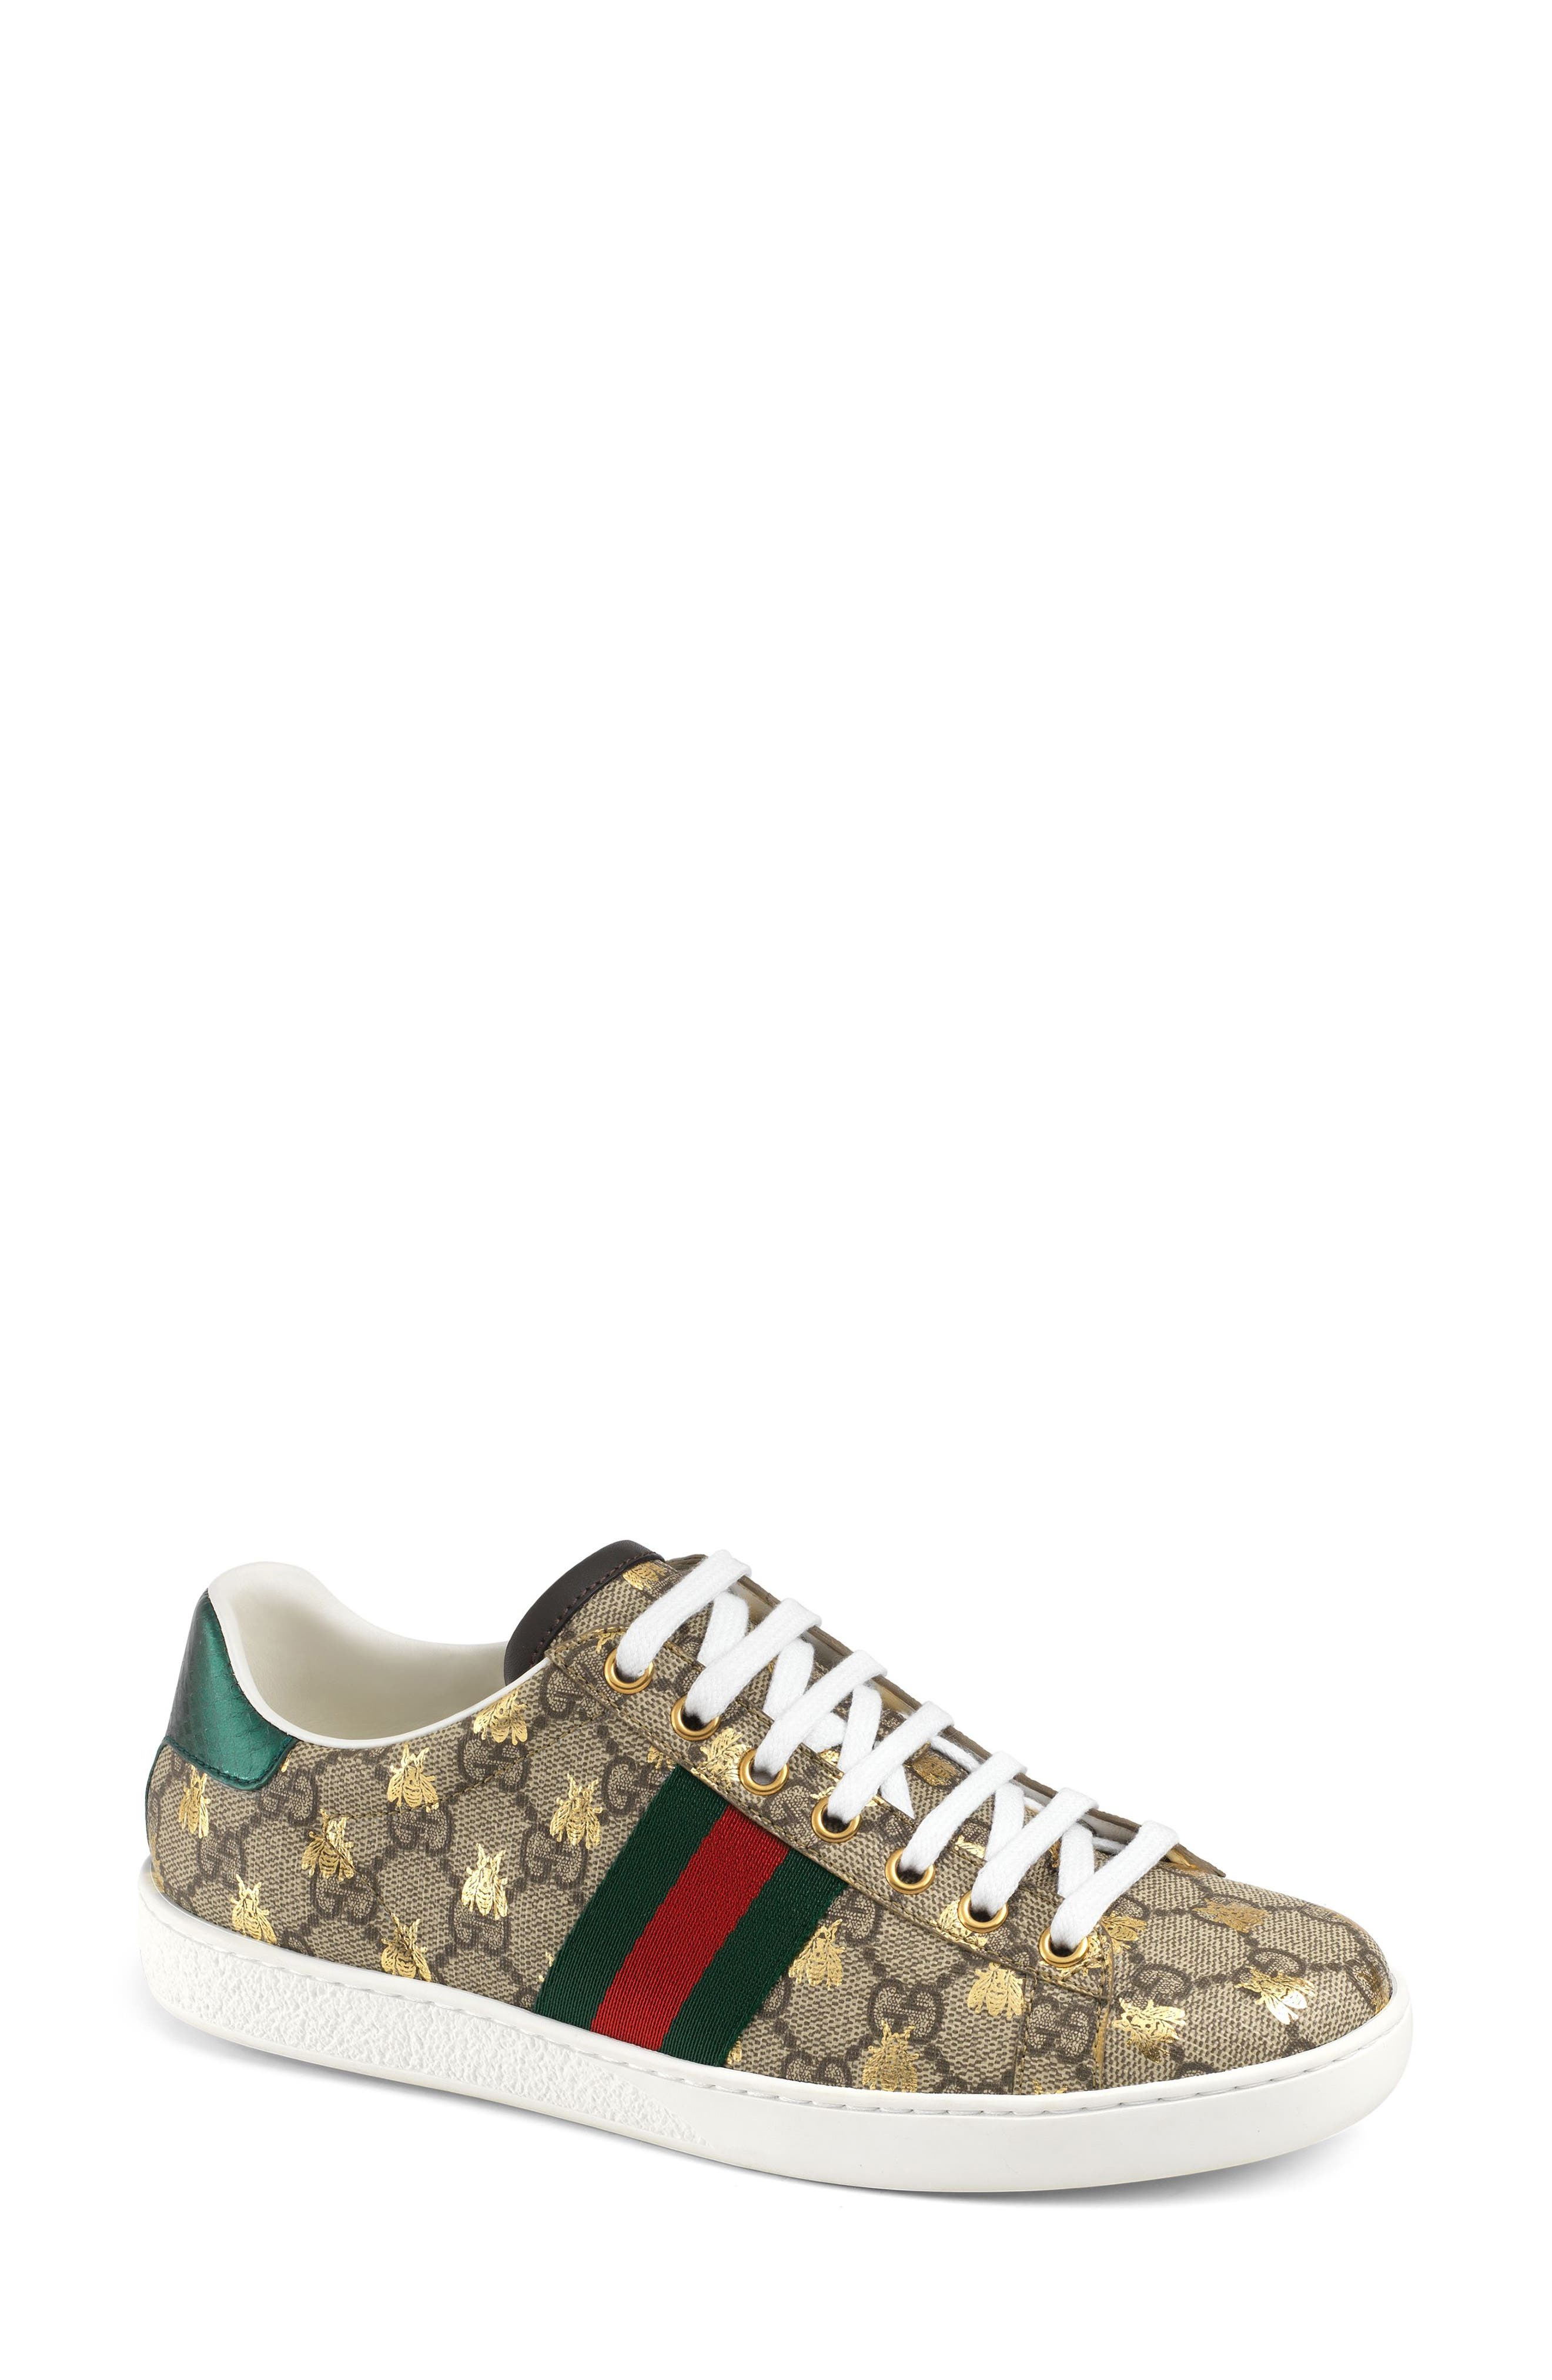 GUCCI, New Ace Monogram Bee Sneaker, Main thumbnail 1, color, BEIGE/ GOLD